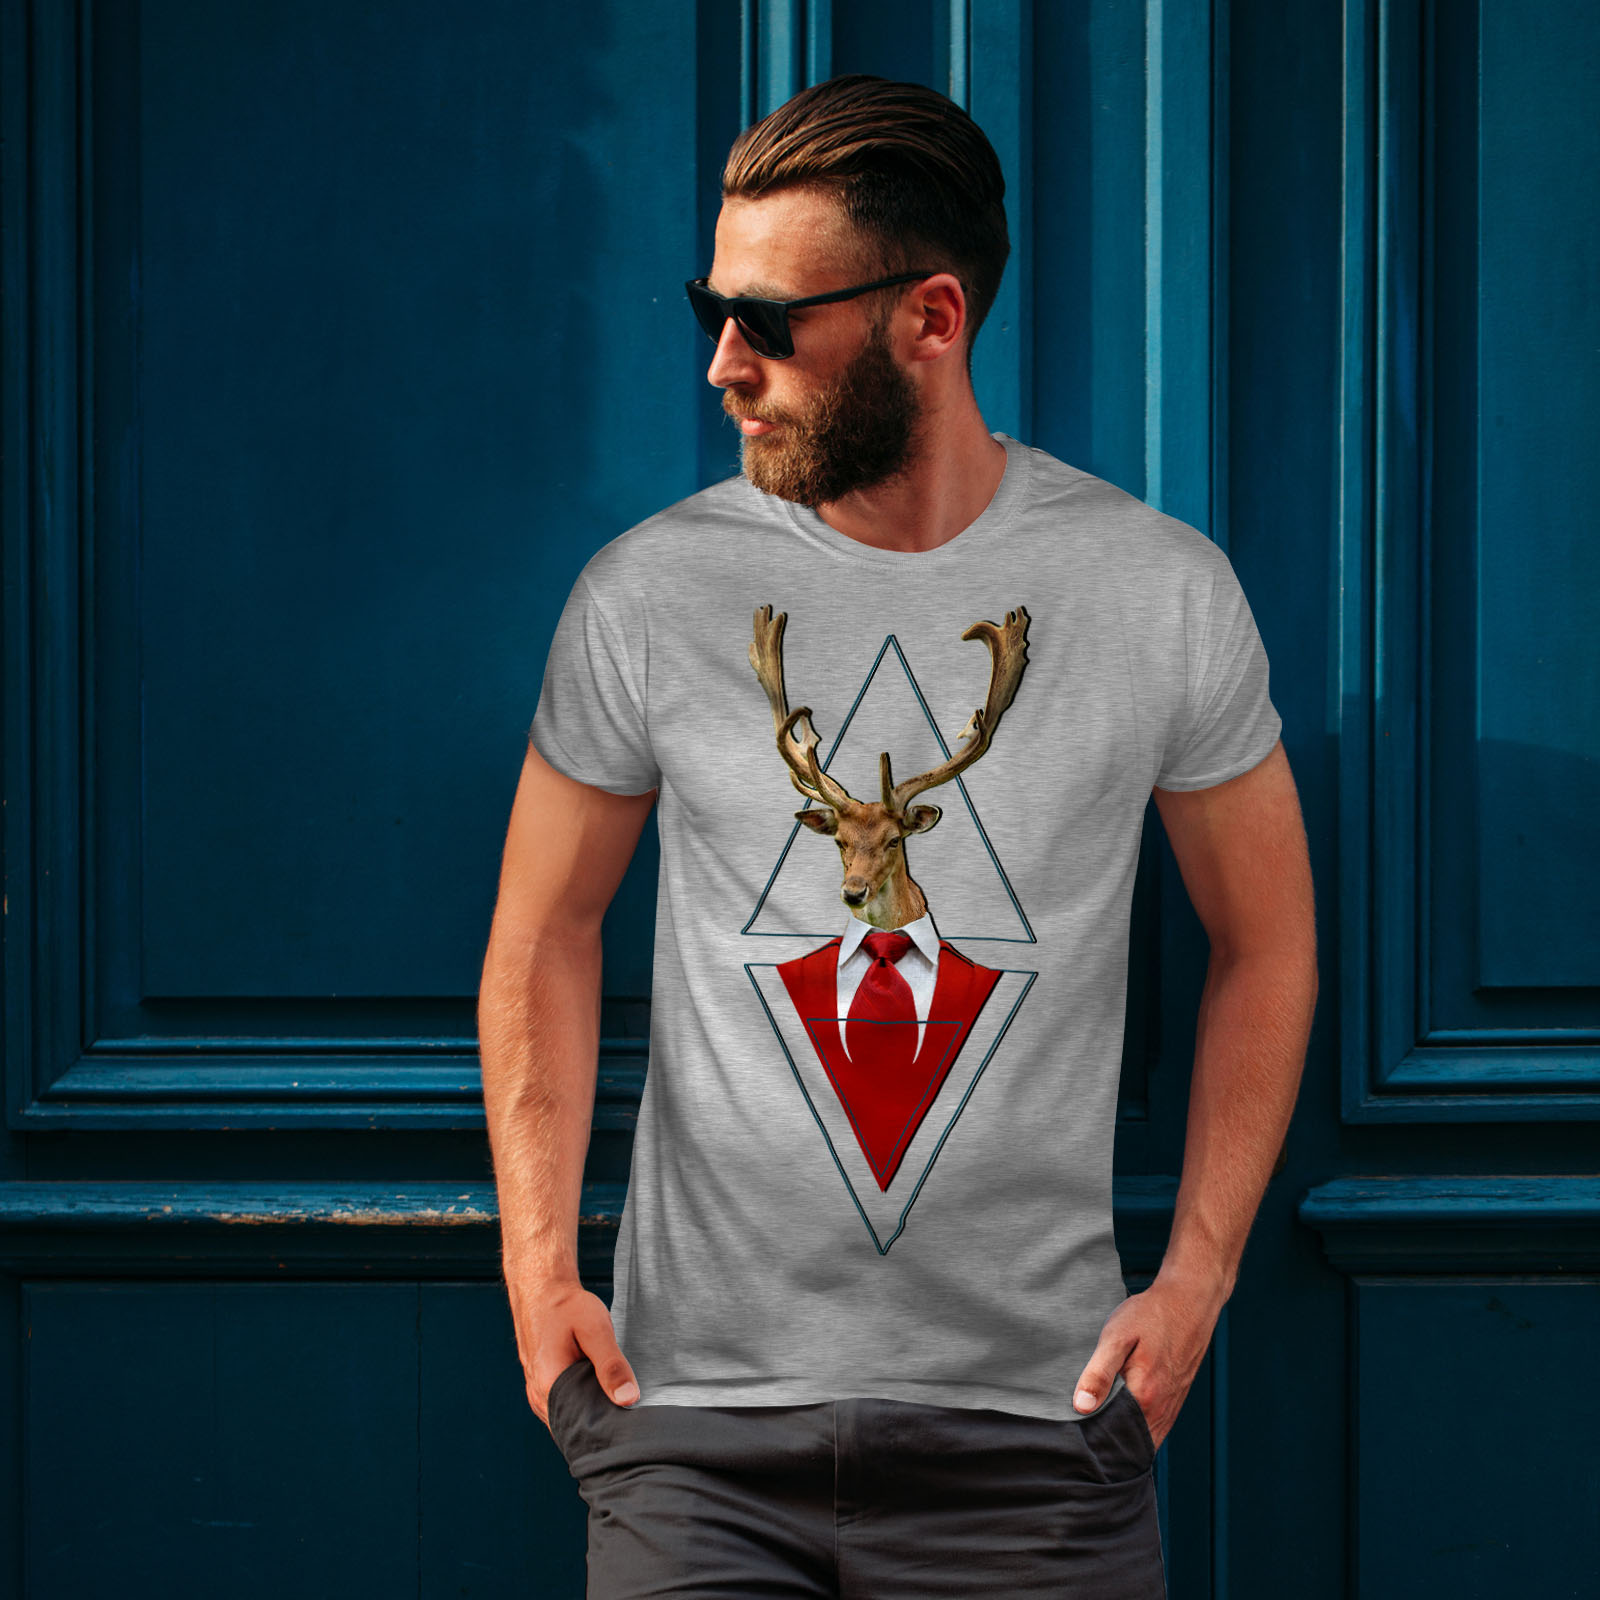 Wellcoda-Abstract-Animal-T-shirt-Homme-chic-design-graphique-imprime-Tee miniature 16